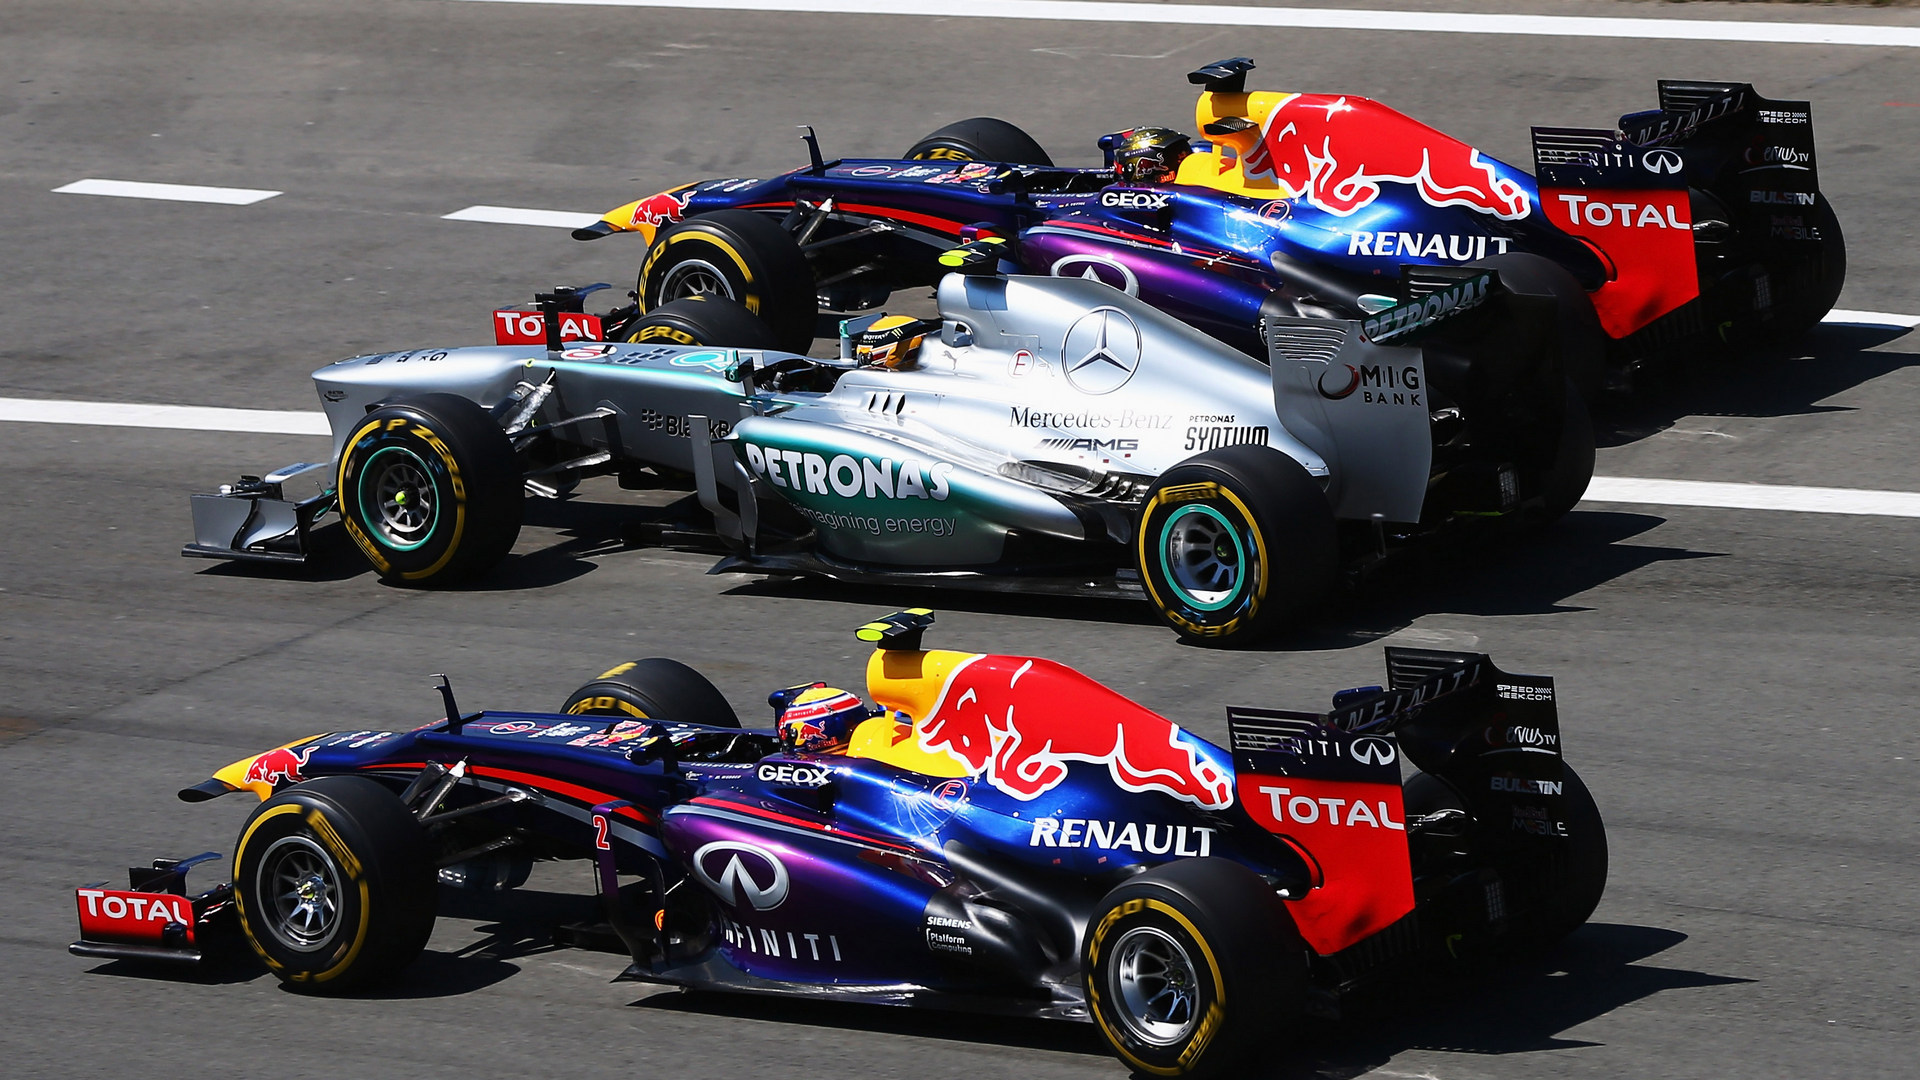 HD wallpaper pictures 2013 German Grand Prix | F1-Fansite.com